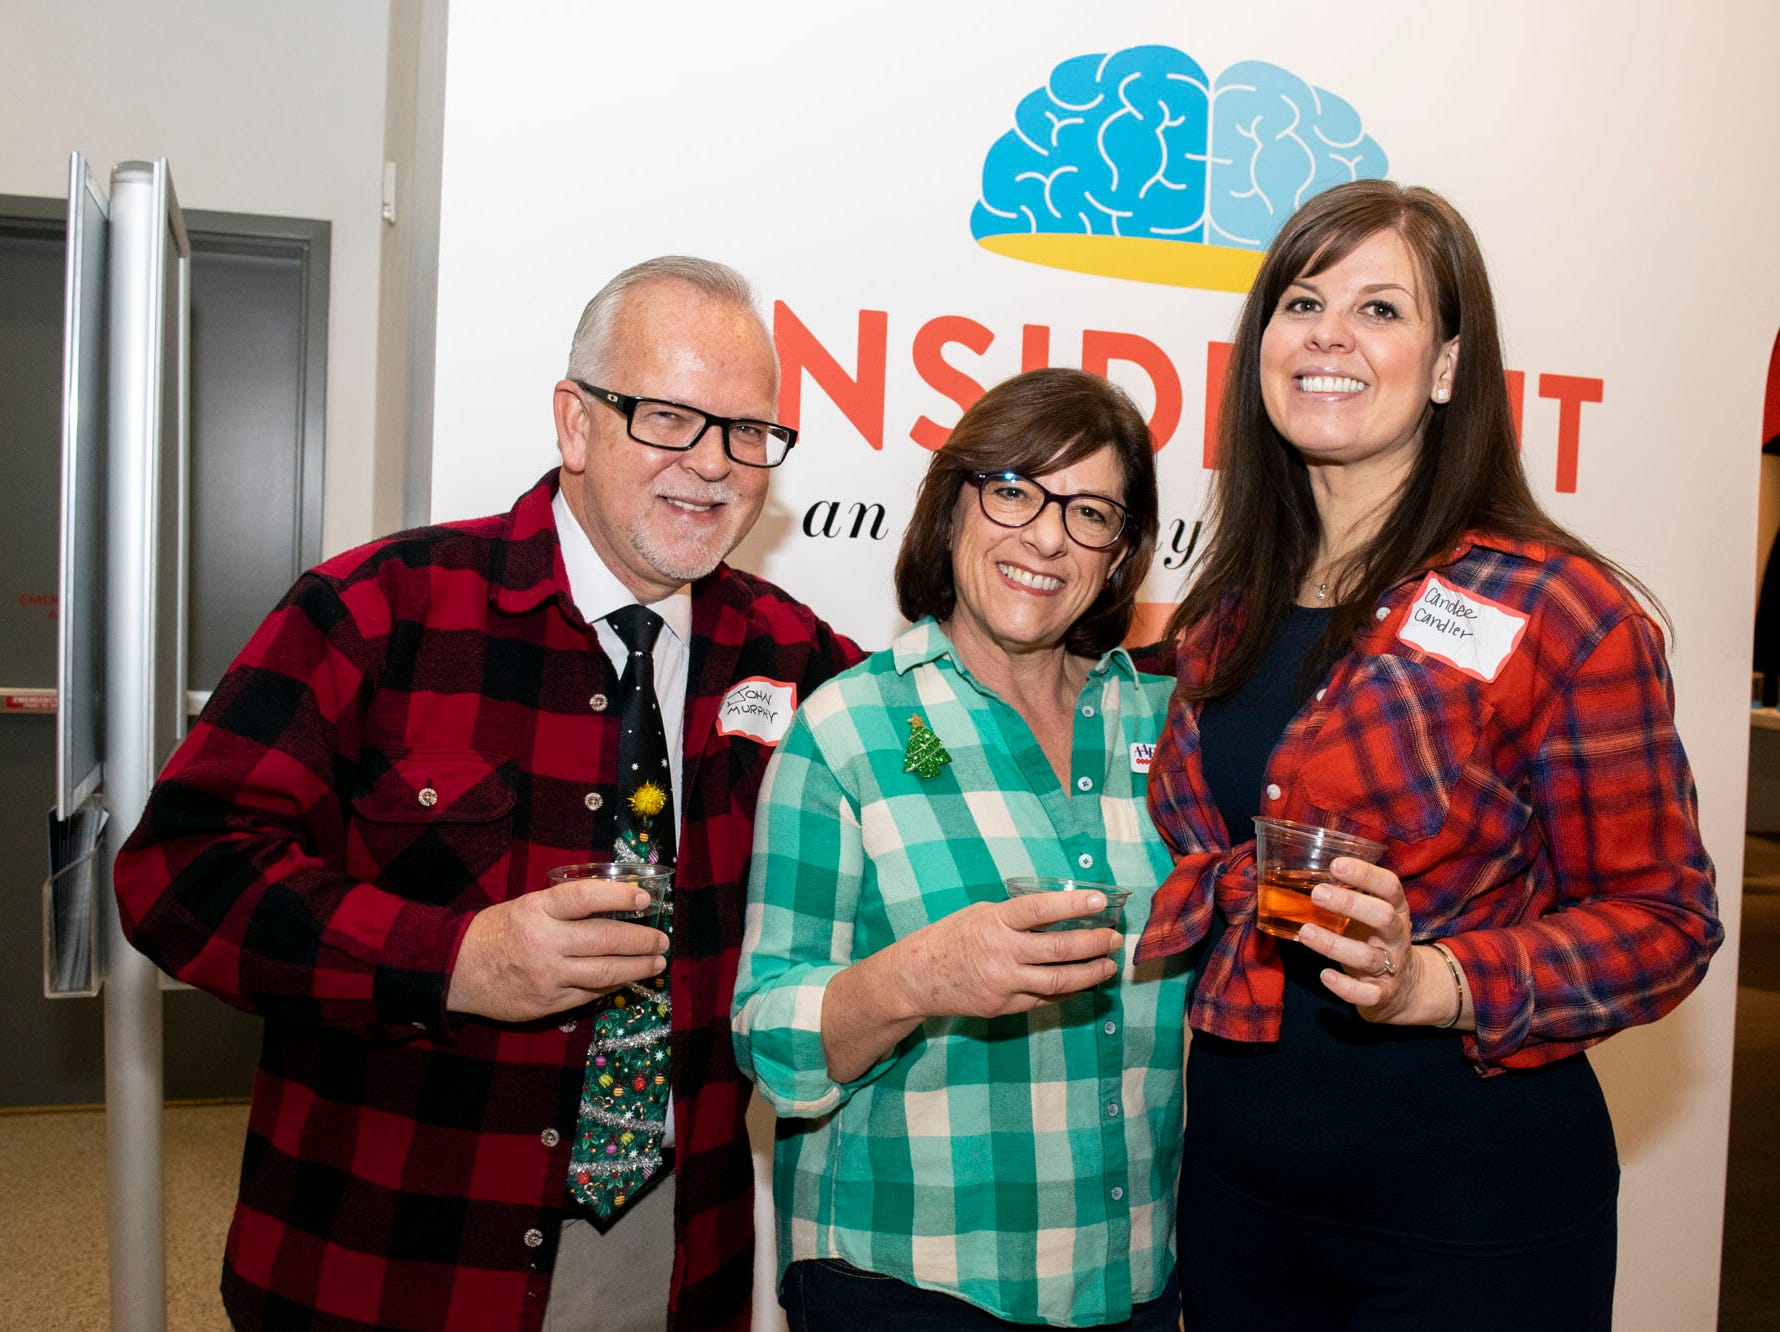 John Murphy, Esther Isaac, and Candee Candler attend Mingle Bells 2018 at the Discovery Museum on Thursday, Dec. 6, 2018. Reno, Nev.